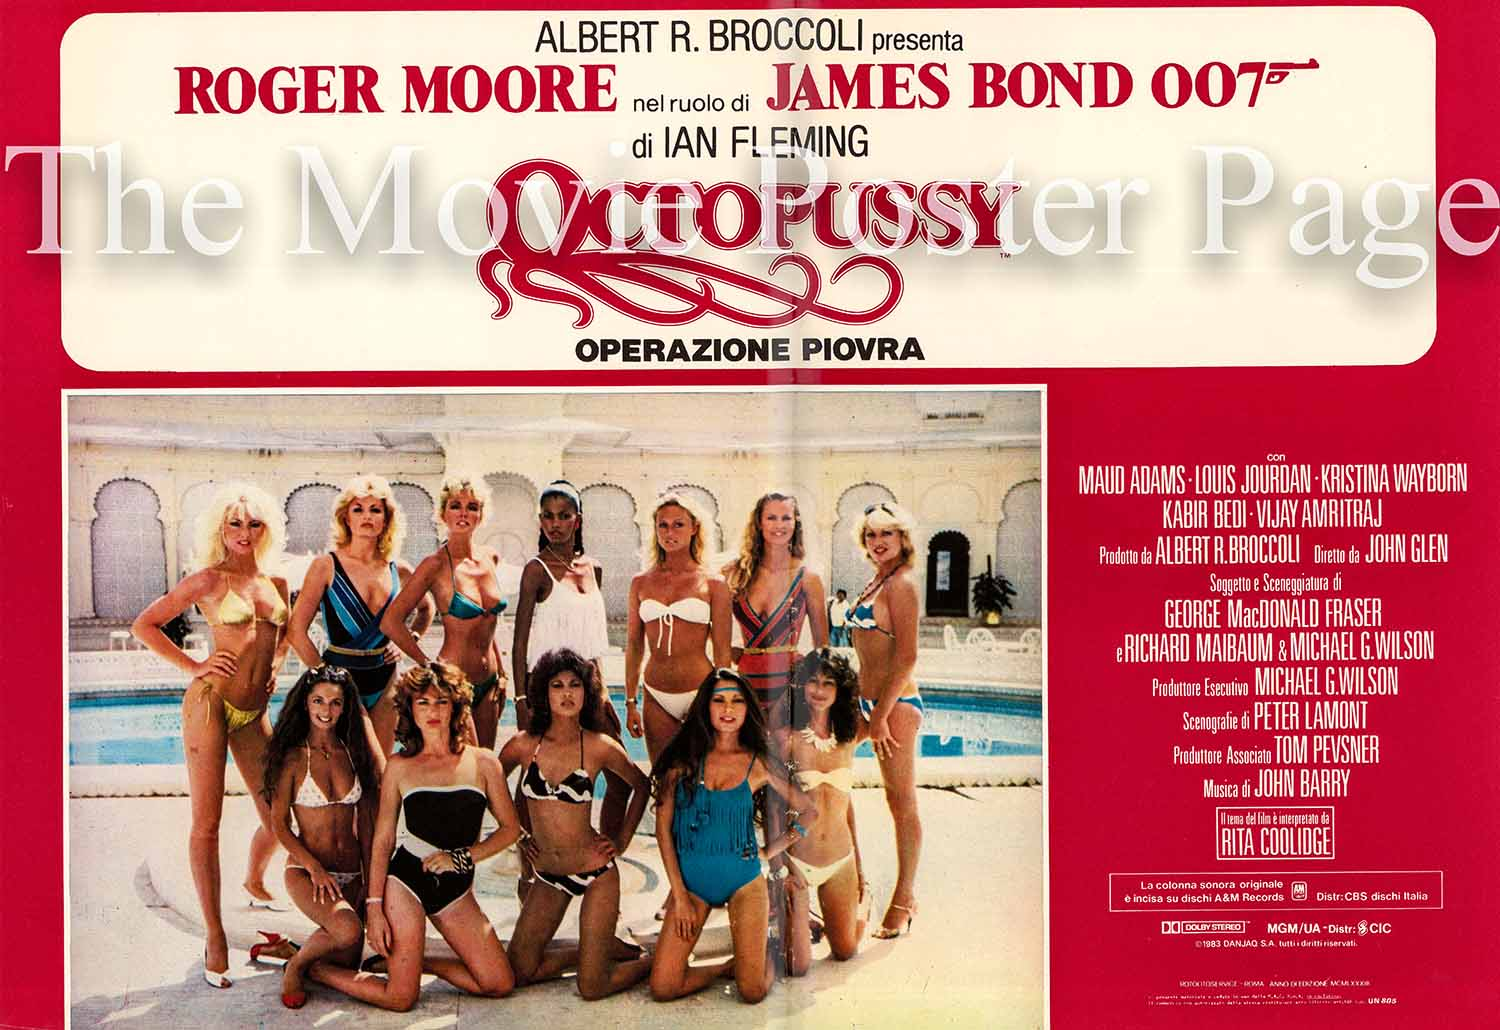 Pictured is an Italian fotobusta poster for the 1983 John Glen film Octopussy starring Roger Moore as James Bond.